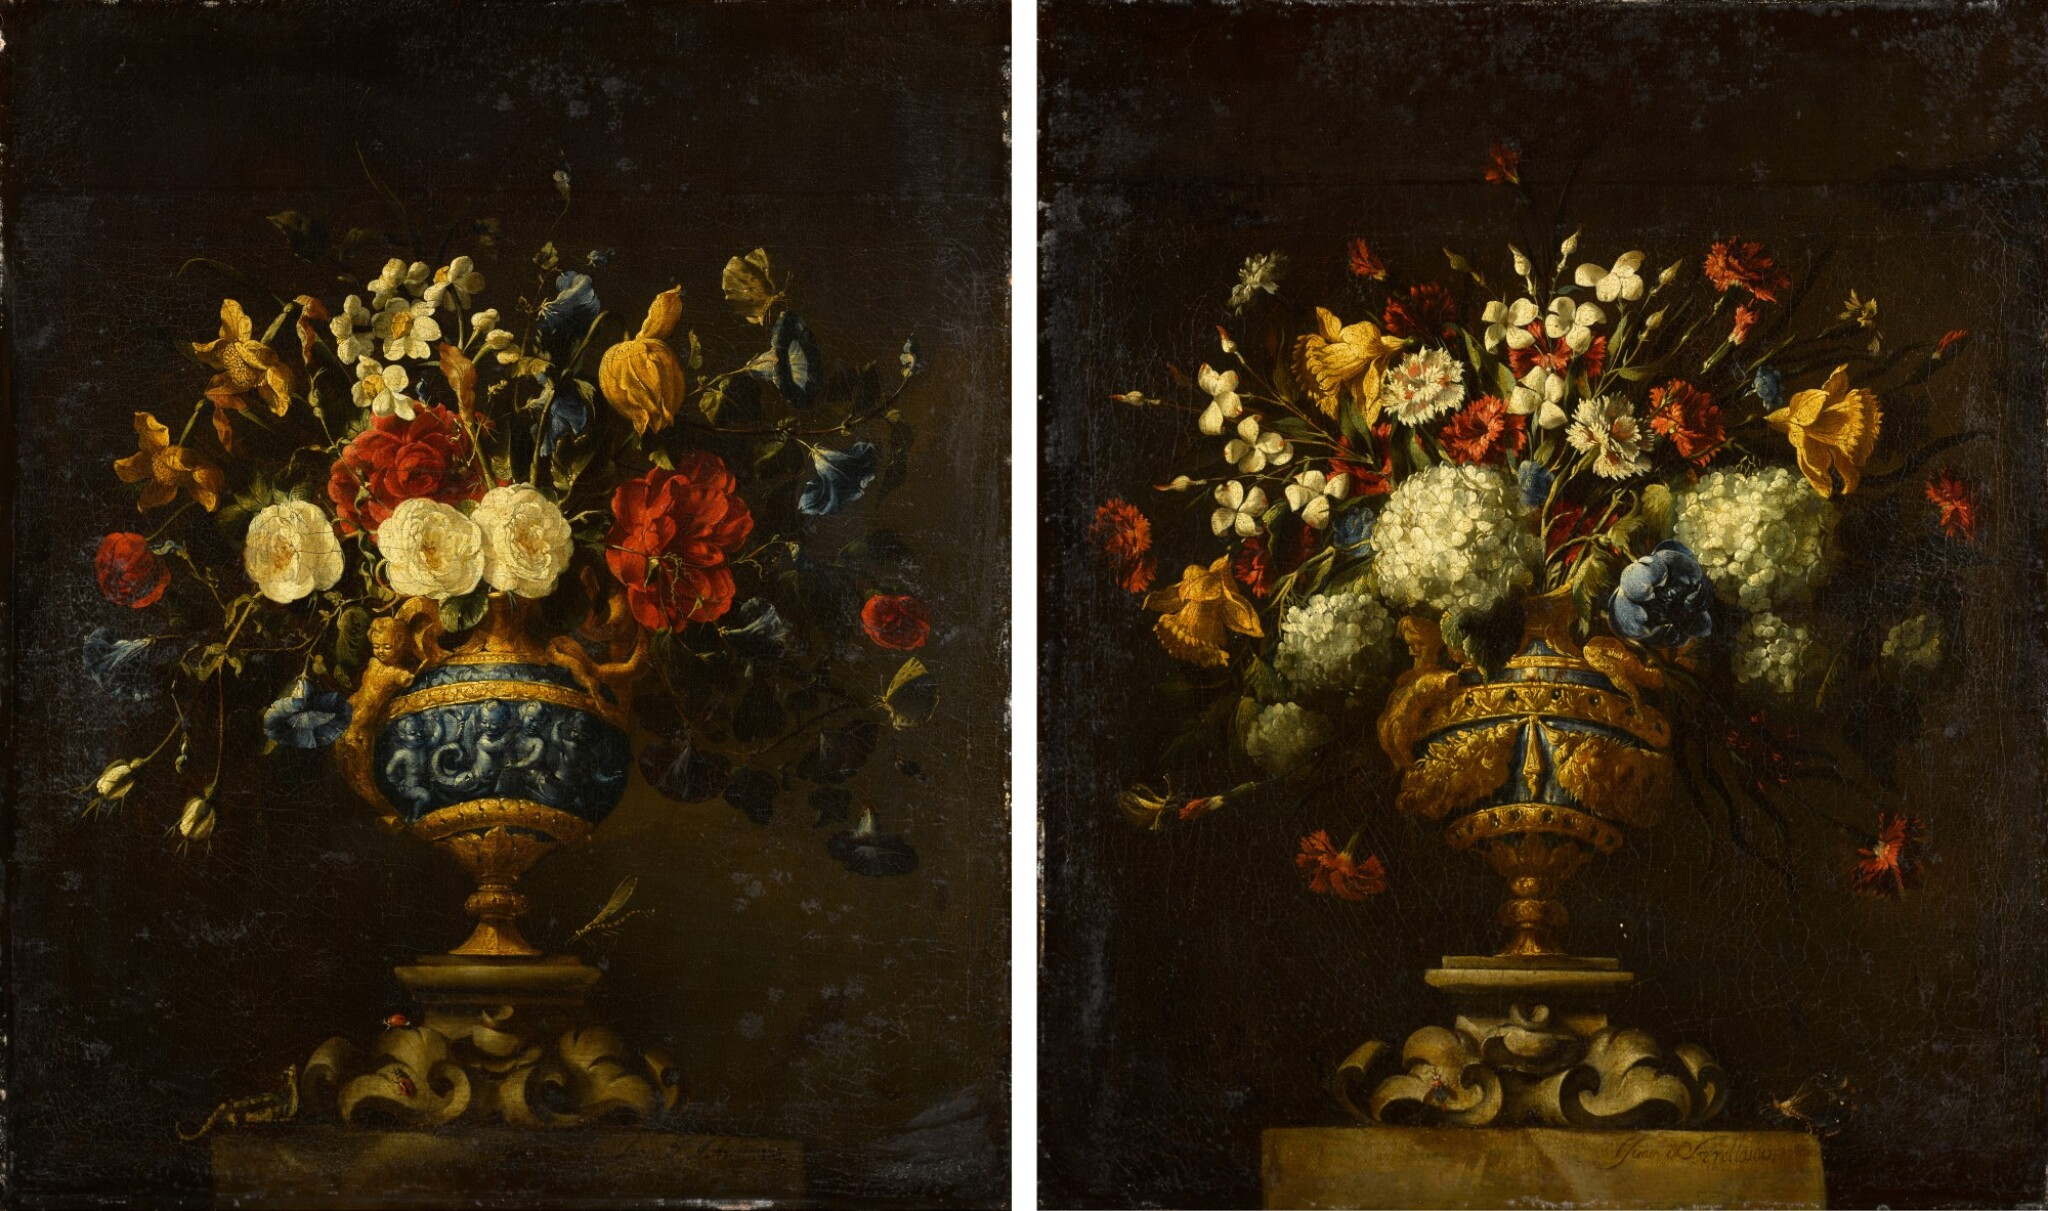 View full screen - View 1 of Lot 42. A pair of floral still lifes, in lapis and bronze vases on stone plinths | 《靜物畫一對:石基座上的青銅鑲青金石瓶花》.